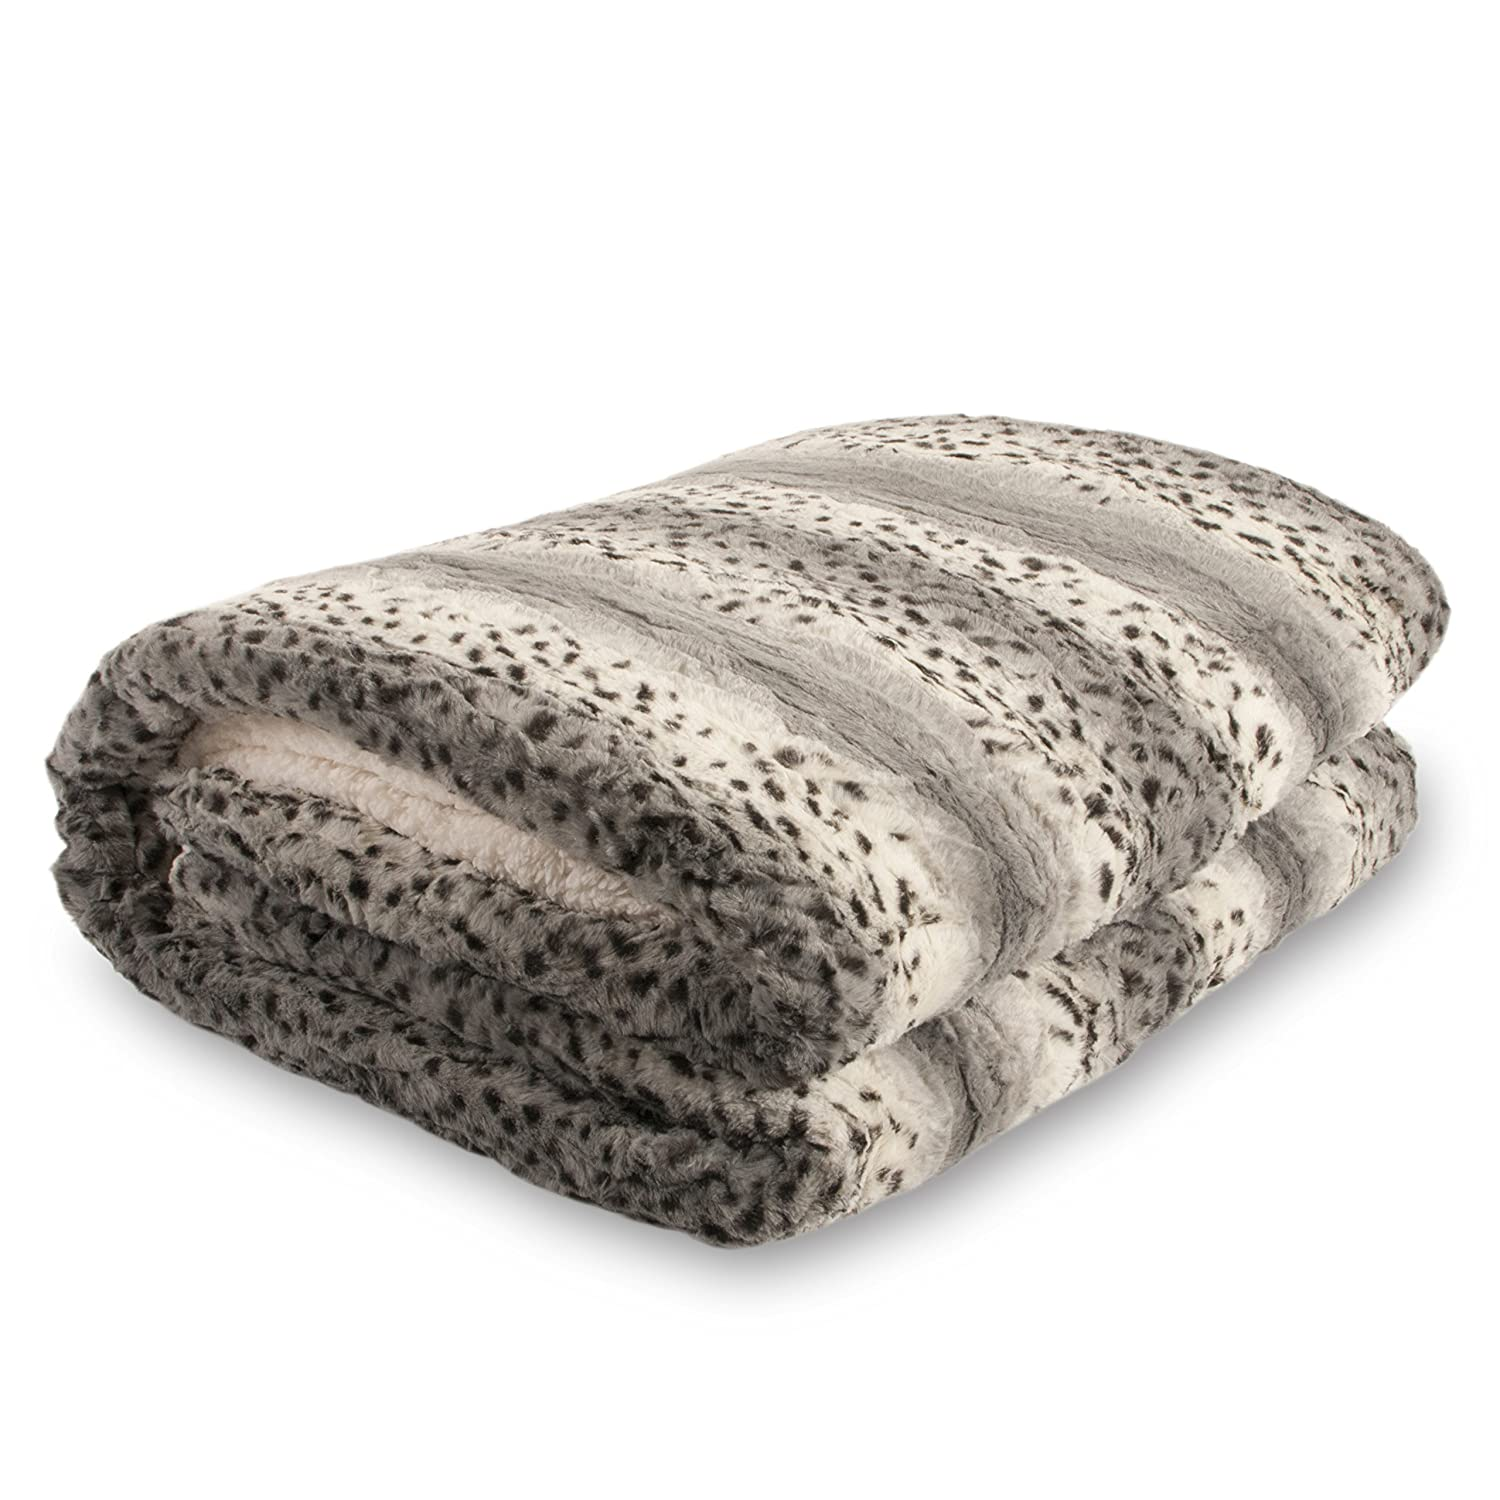 Bella Safari Faux Fur Plush Throw Blanket Comforter AQ607, Queen, Snow Leopard